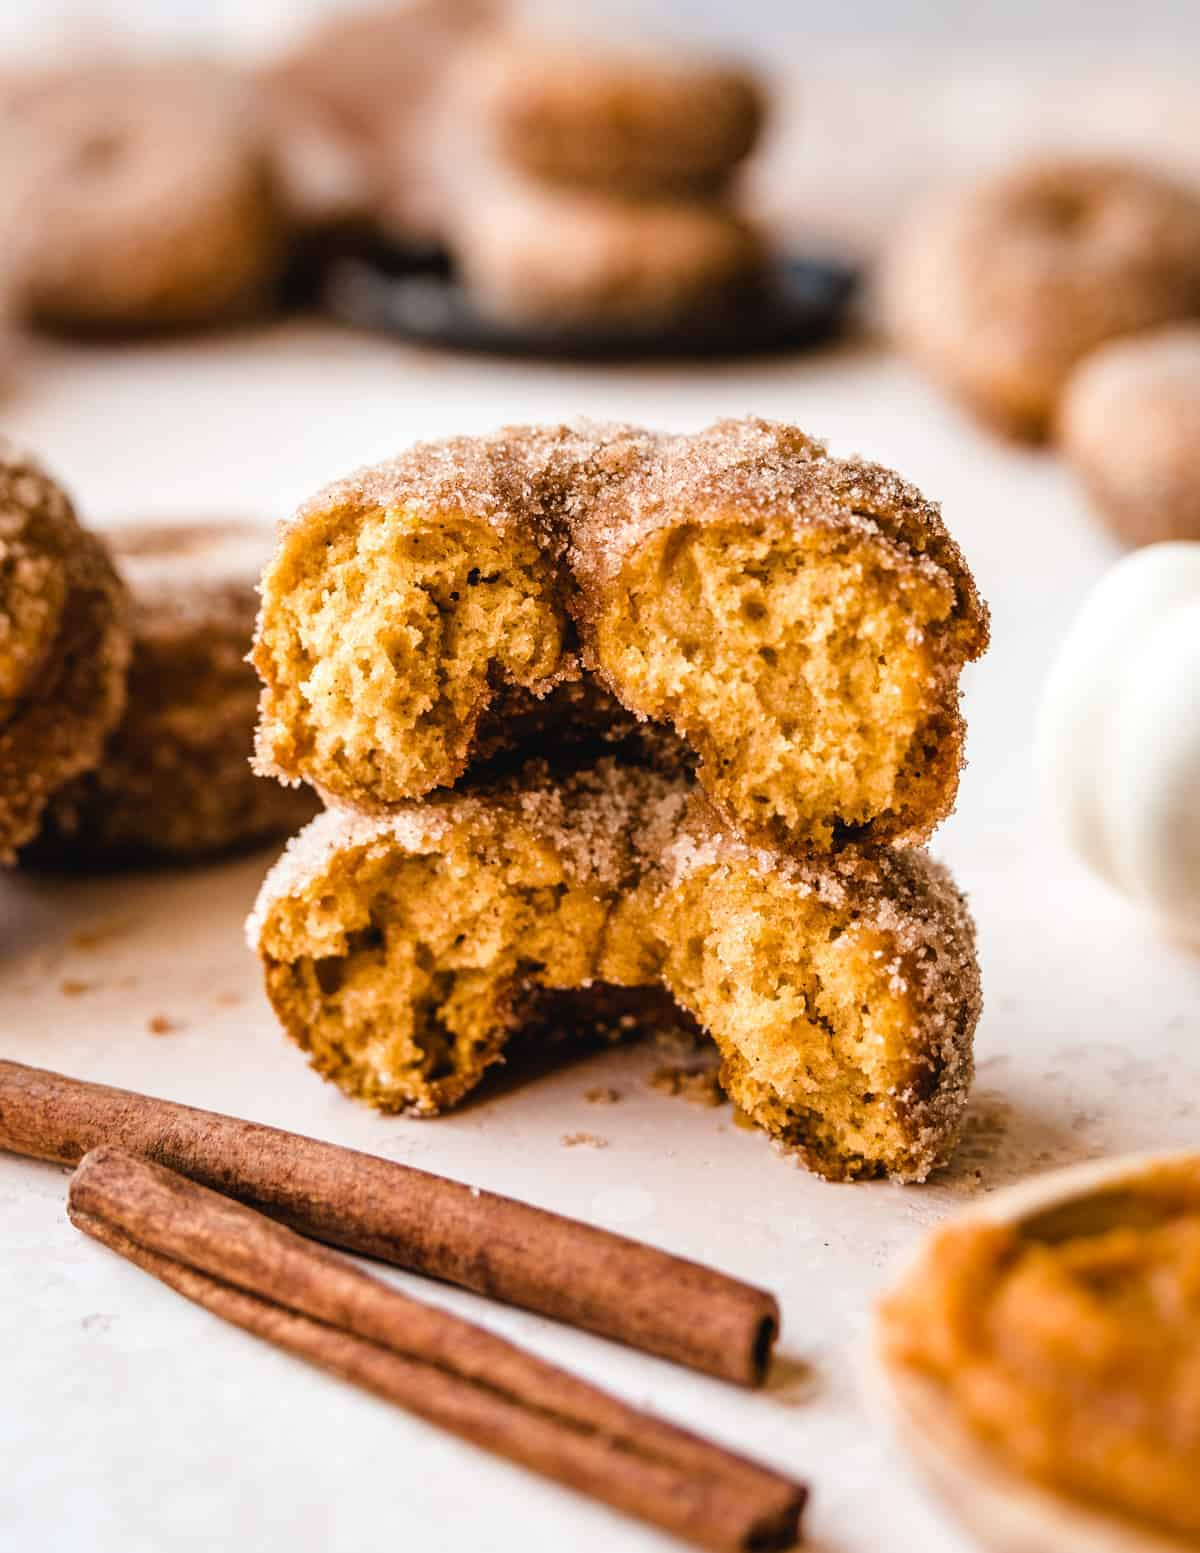 These baked pumpkin donuts are the perfect balance of spice and sweetness.